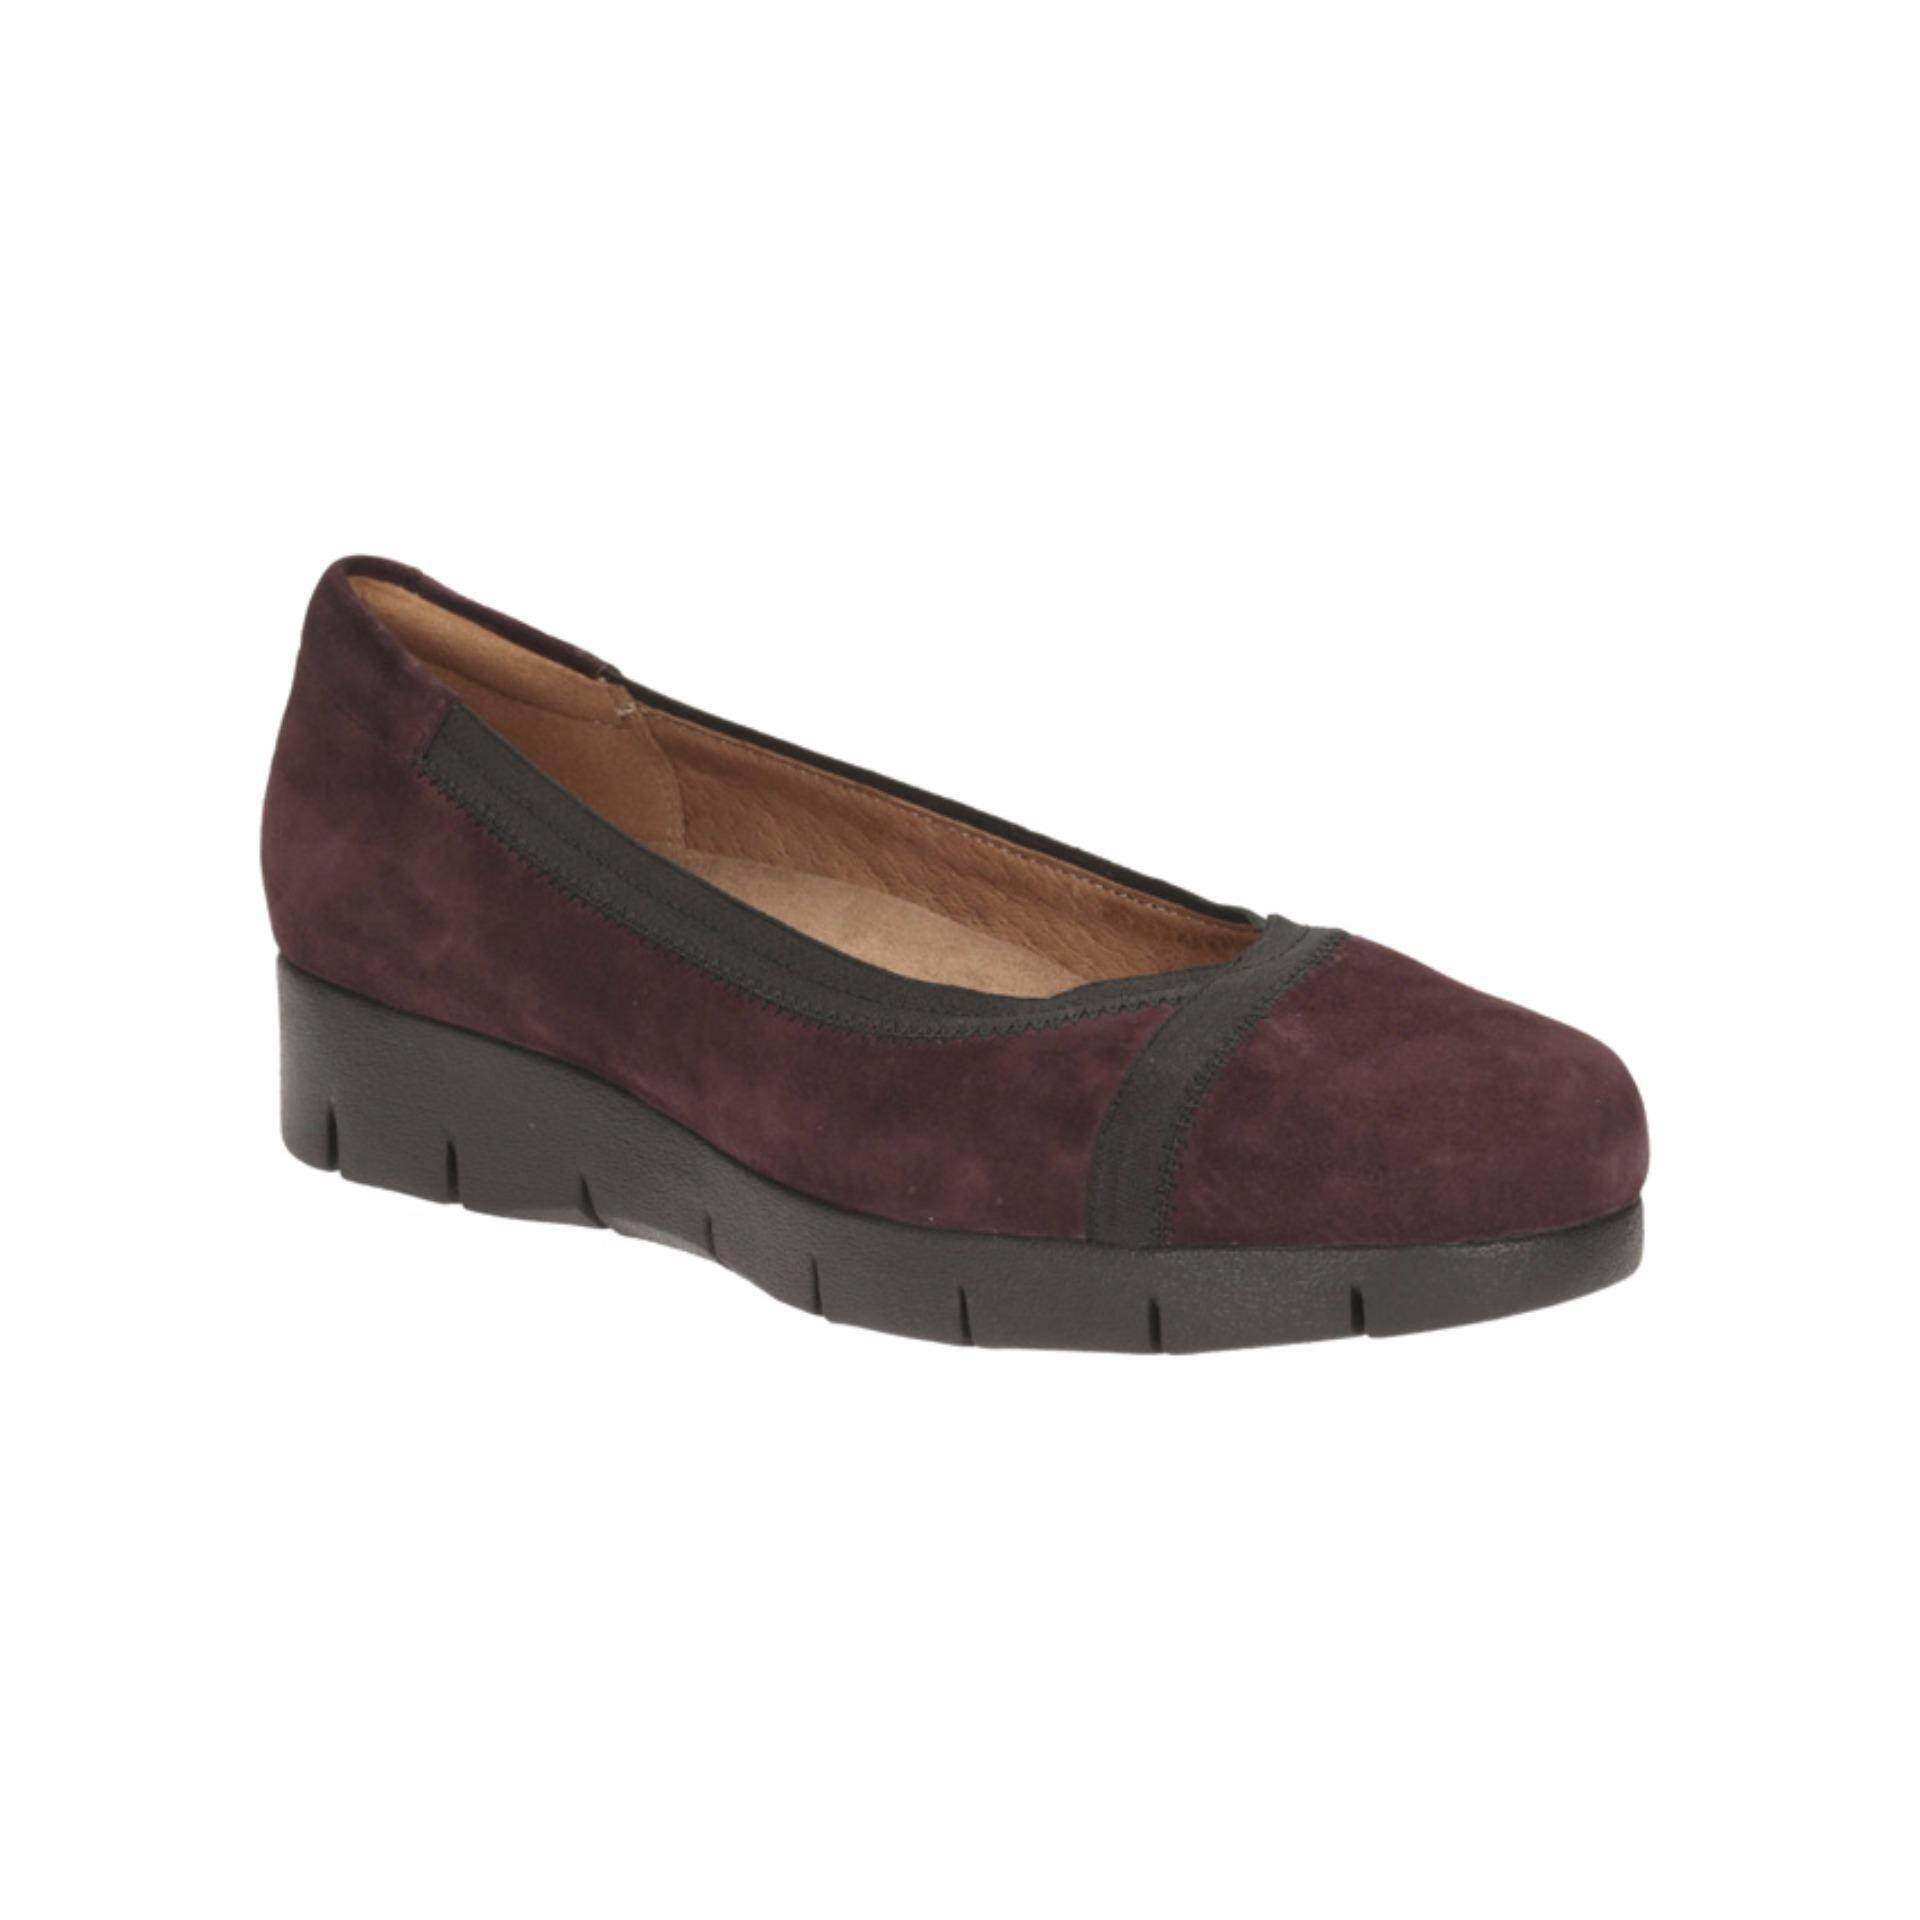 Clarks Buy At Best Price In Malaysia D Island Shoes Slip On British Comfort Leather Dark Brown Daelyn Hill Womens Casual Ons Aubergine